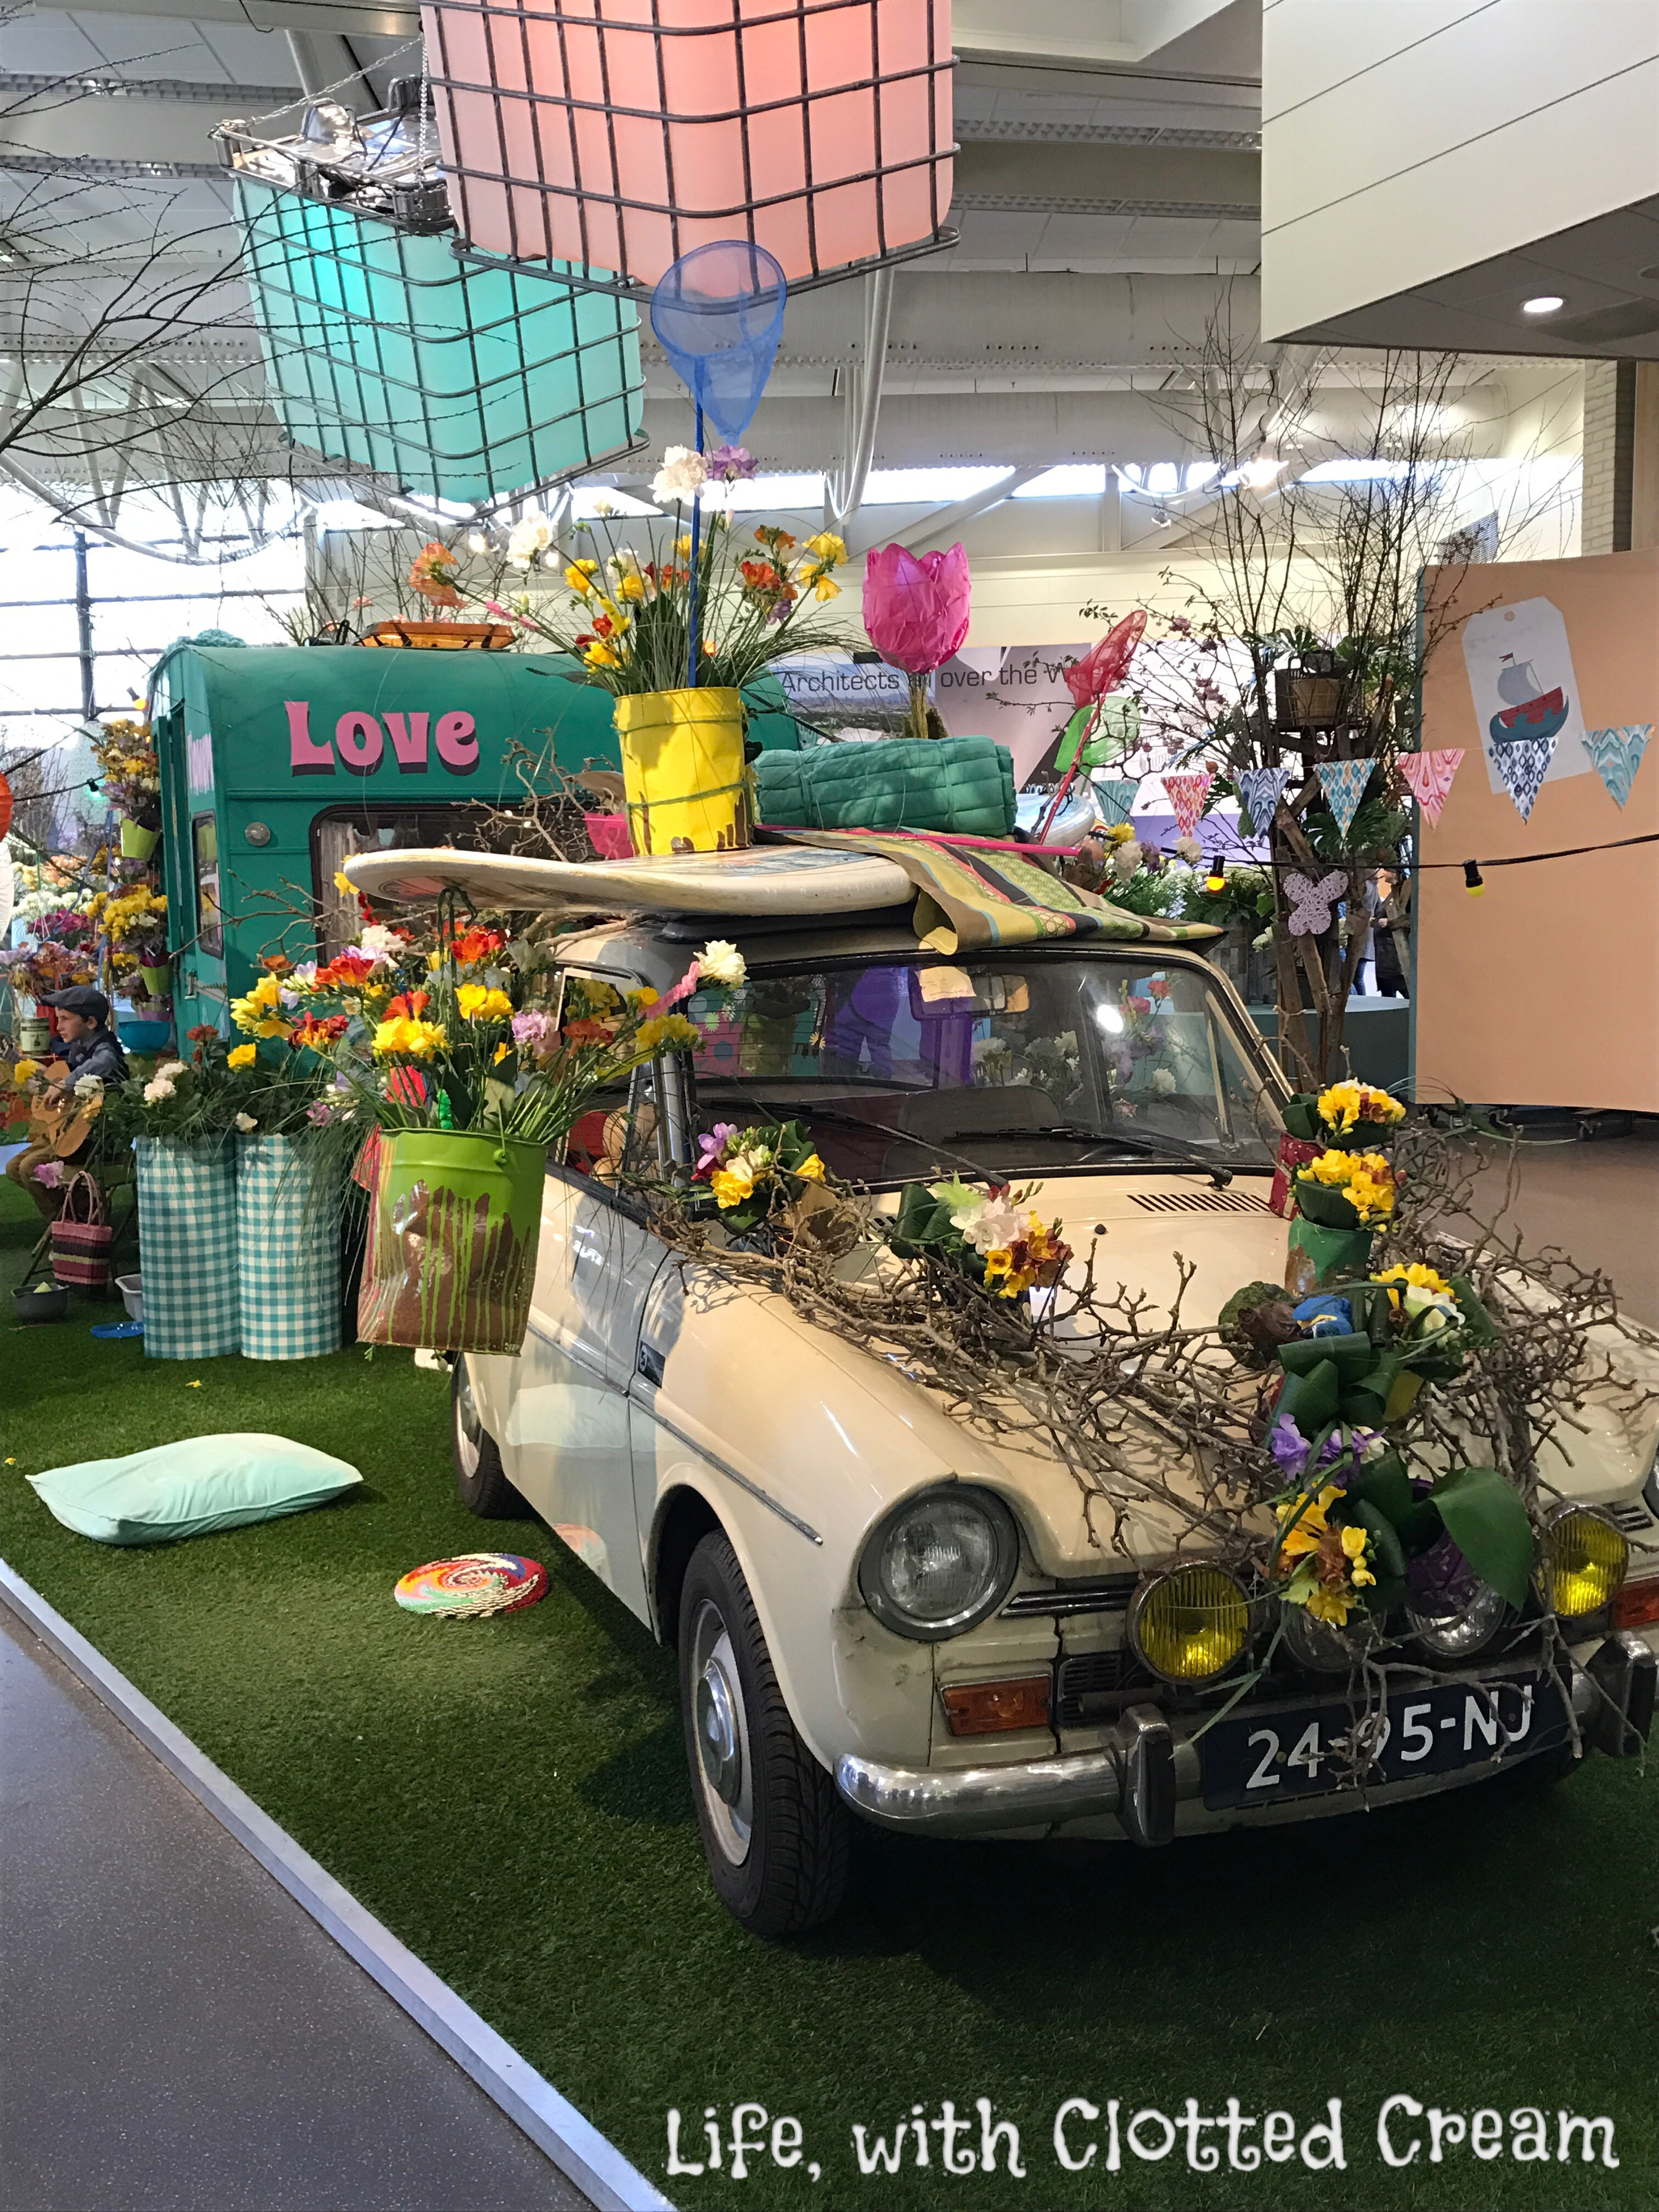 Anglia floral display